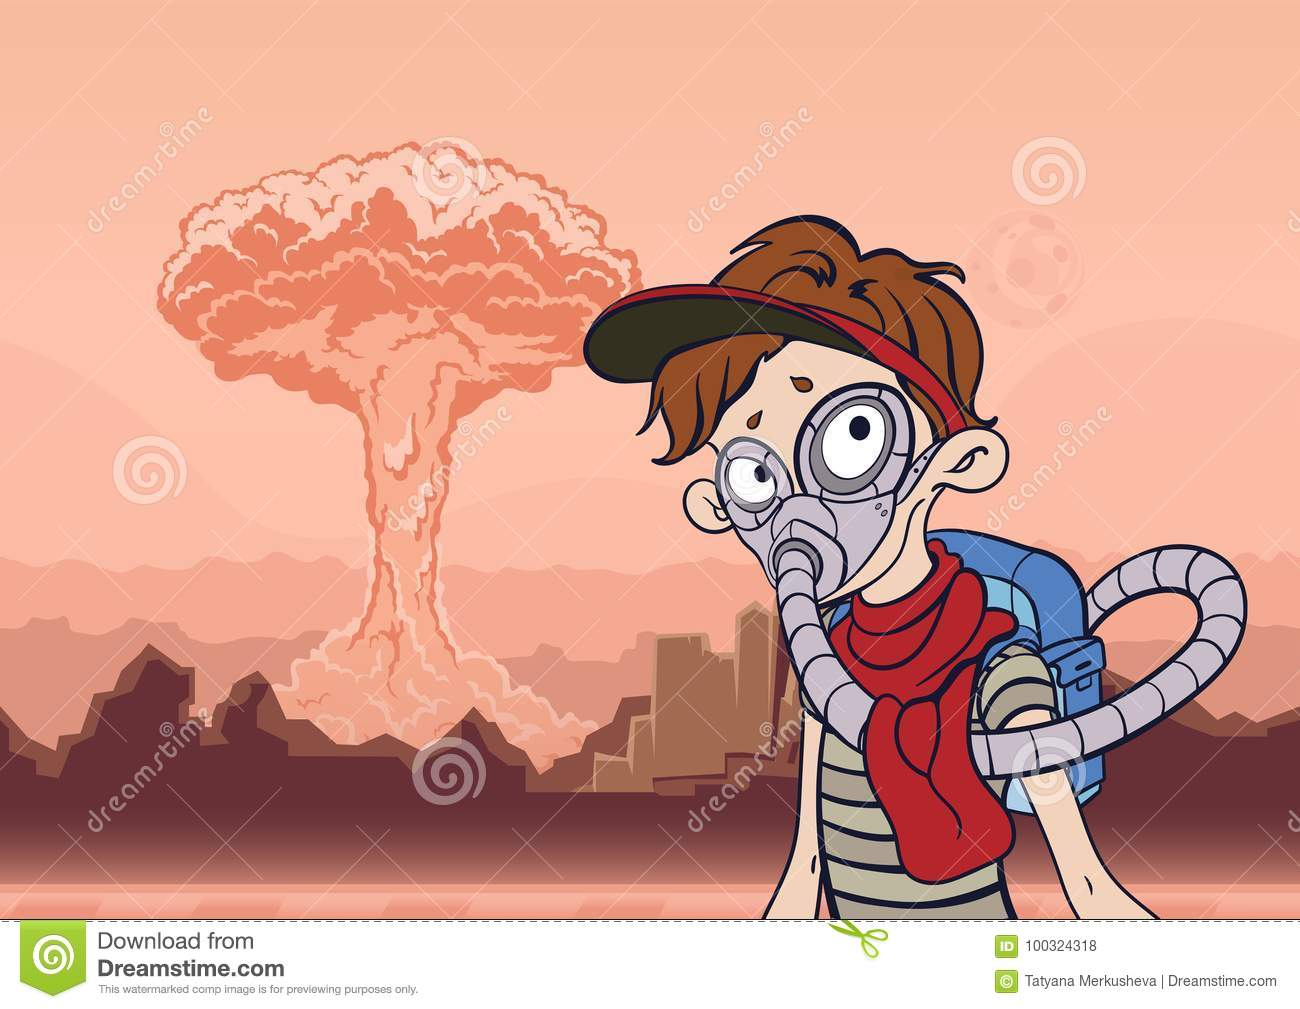 Man in gas mask on a background of barren landscape and a nuclear explosion. Post apocalyptic concept. Vector